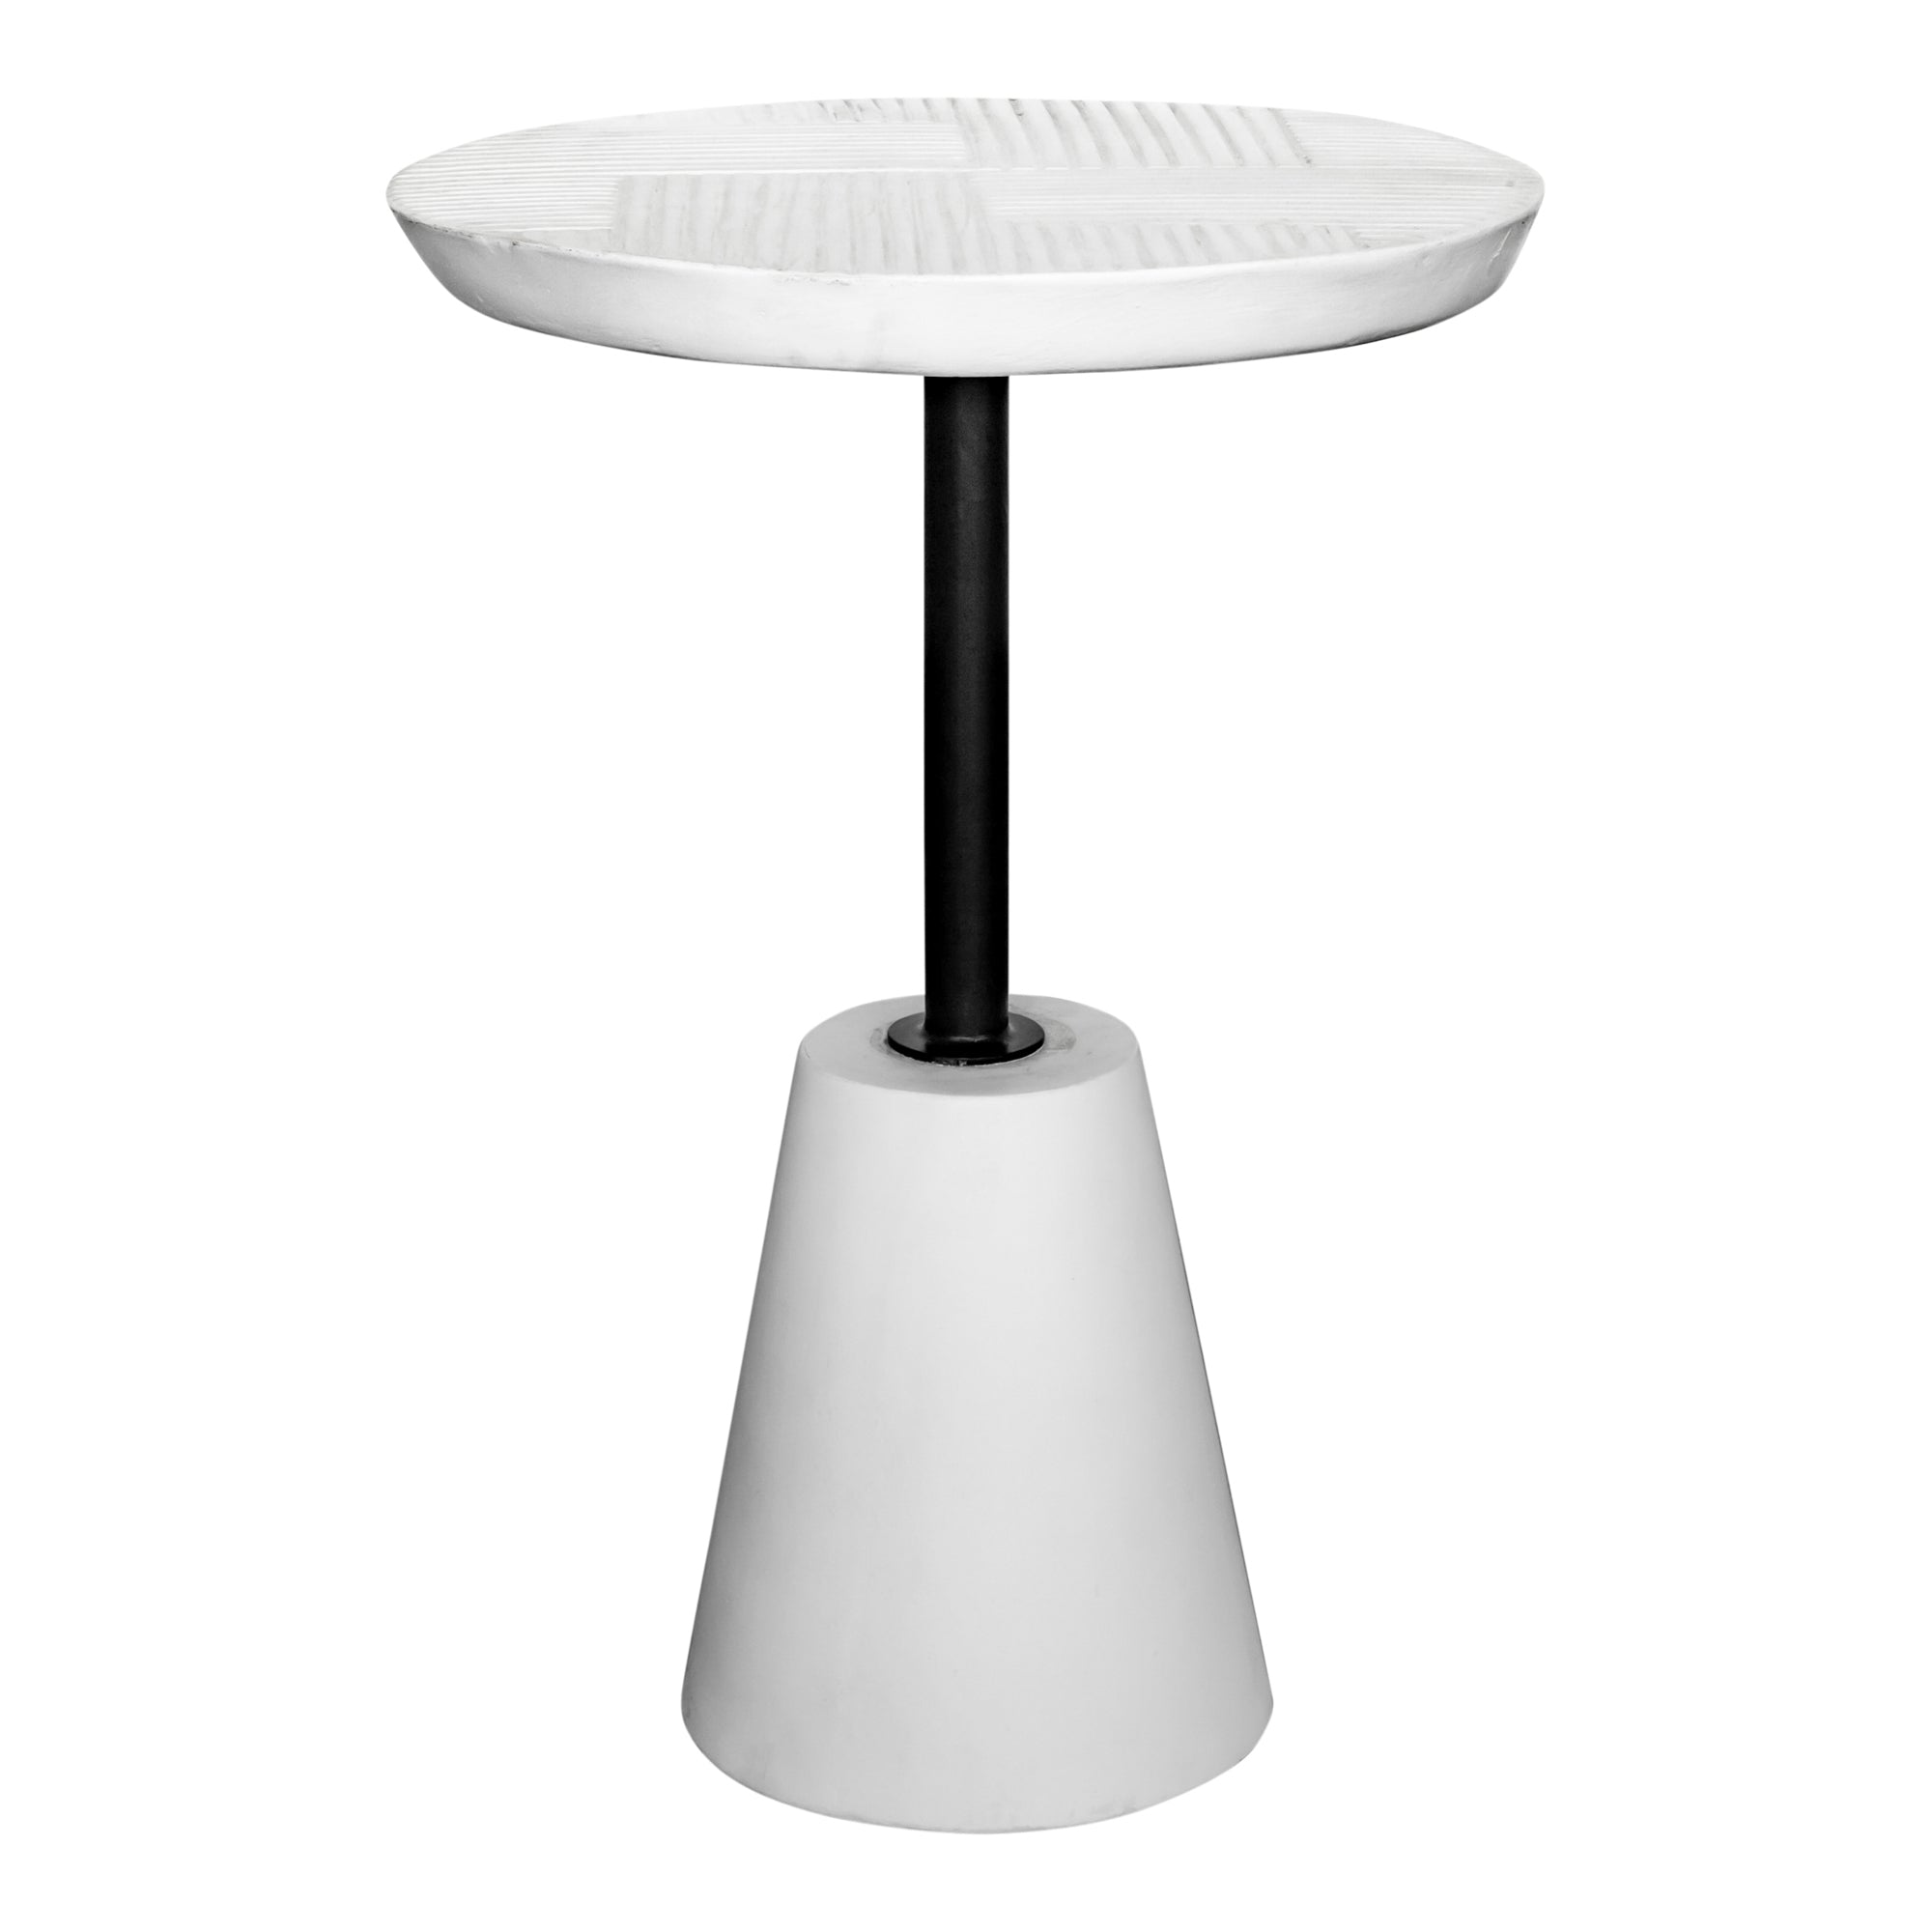 Foundation outdoor accent table, white - Tops-Dress